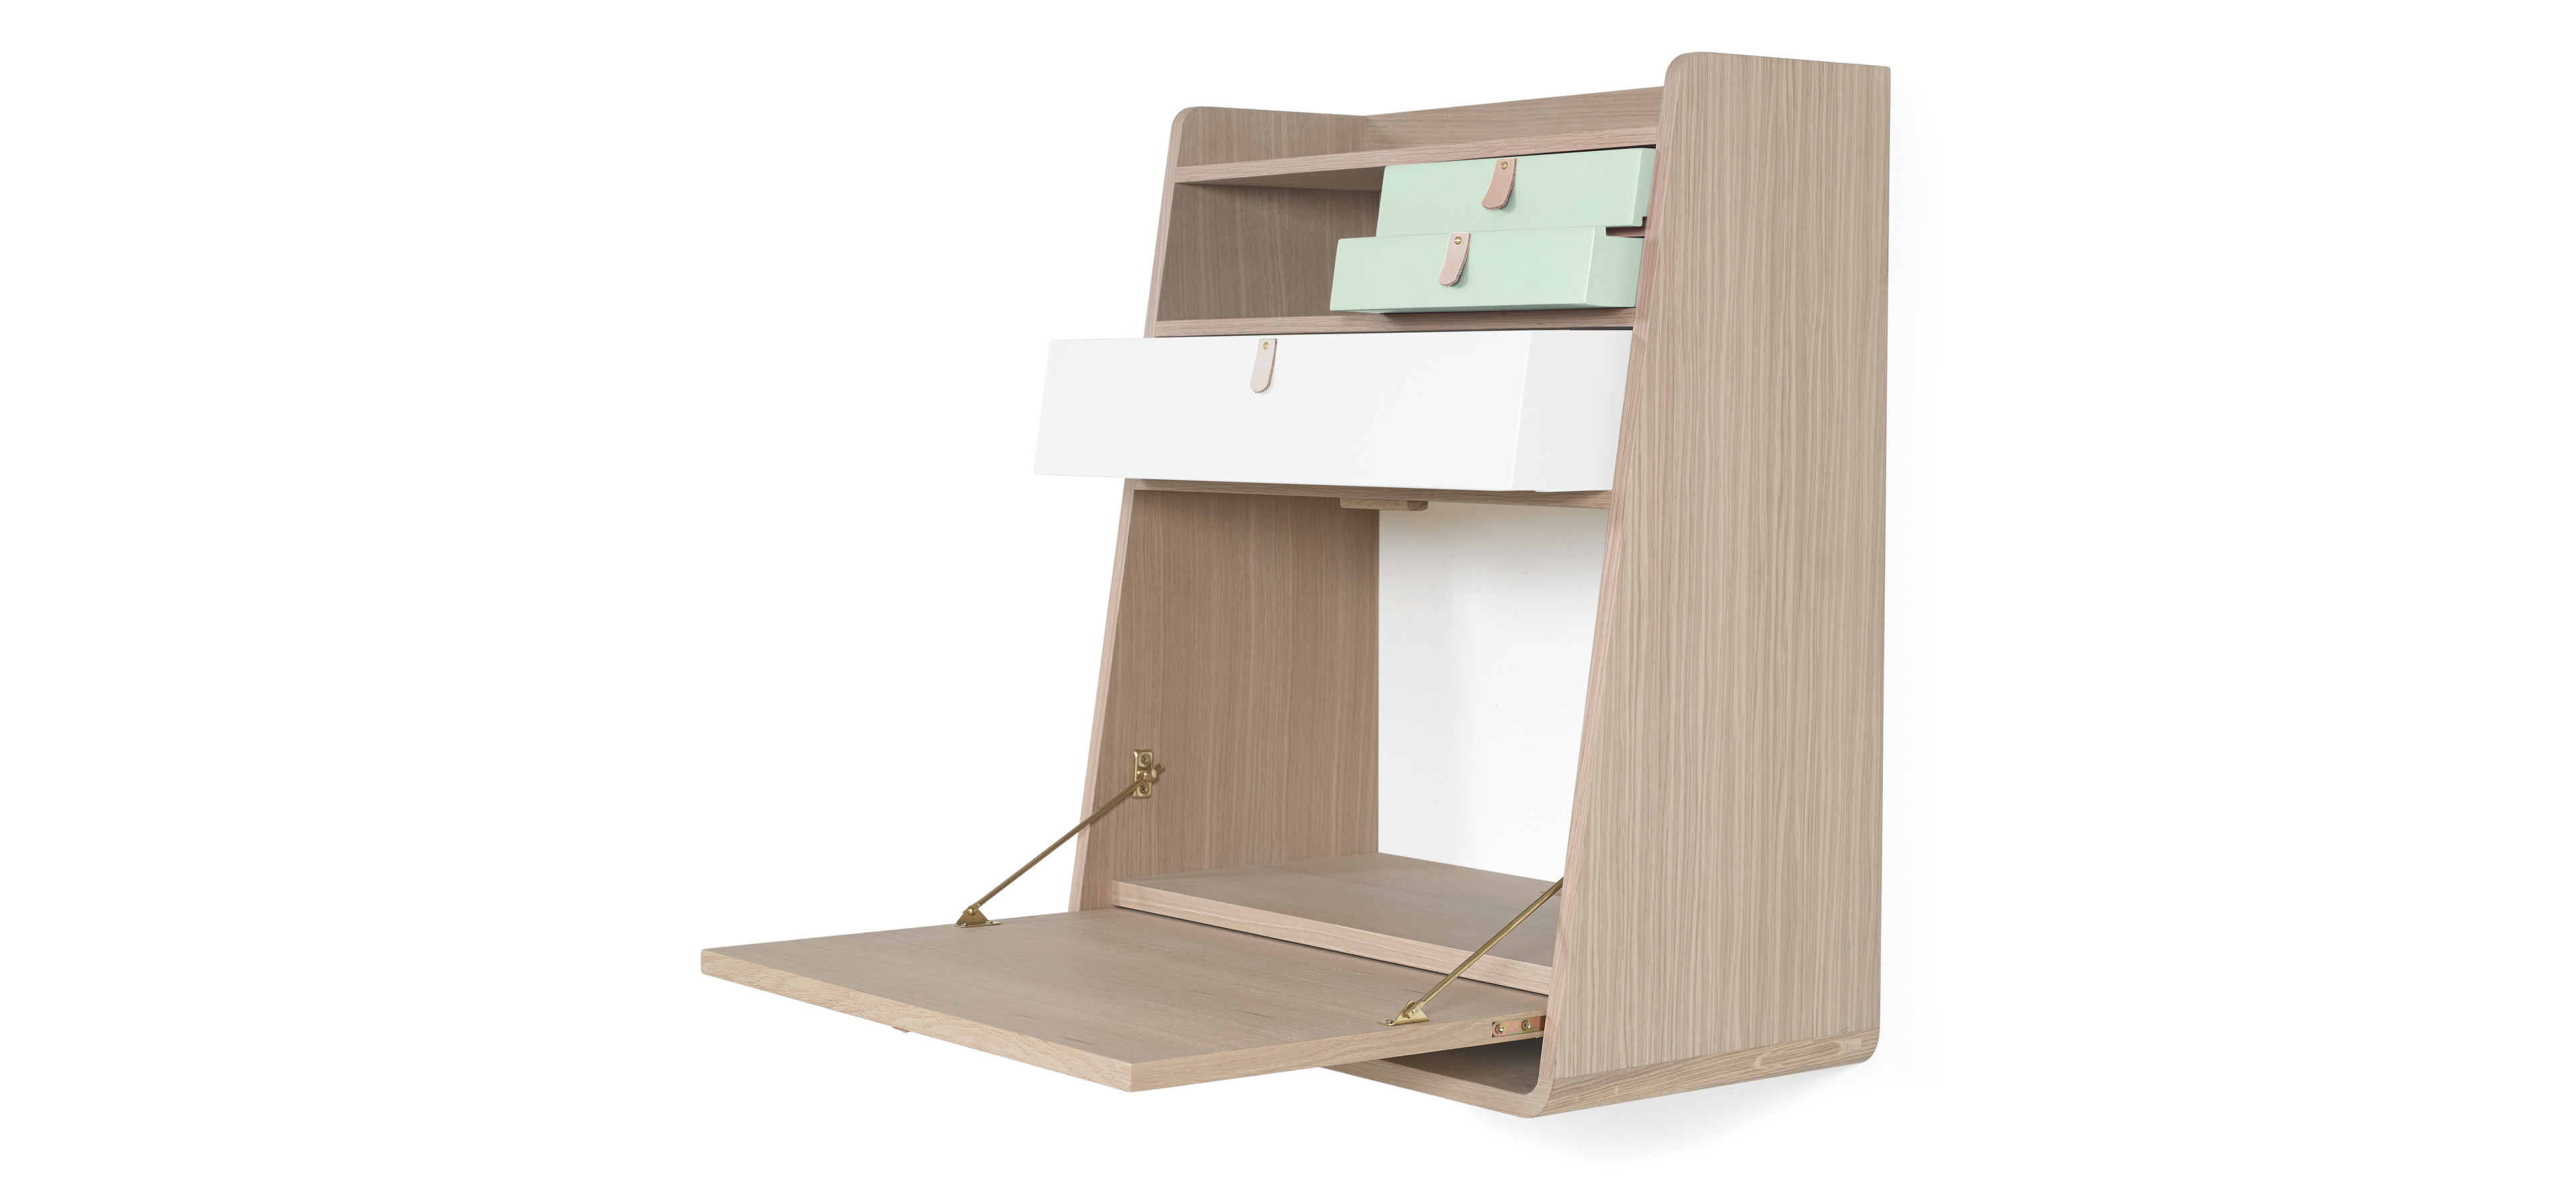 Four essential items to make the perfect home office | Press and Journal